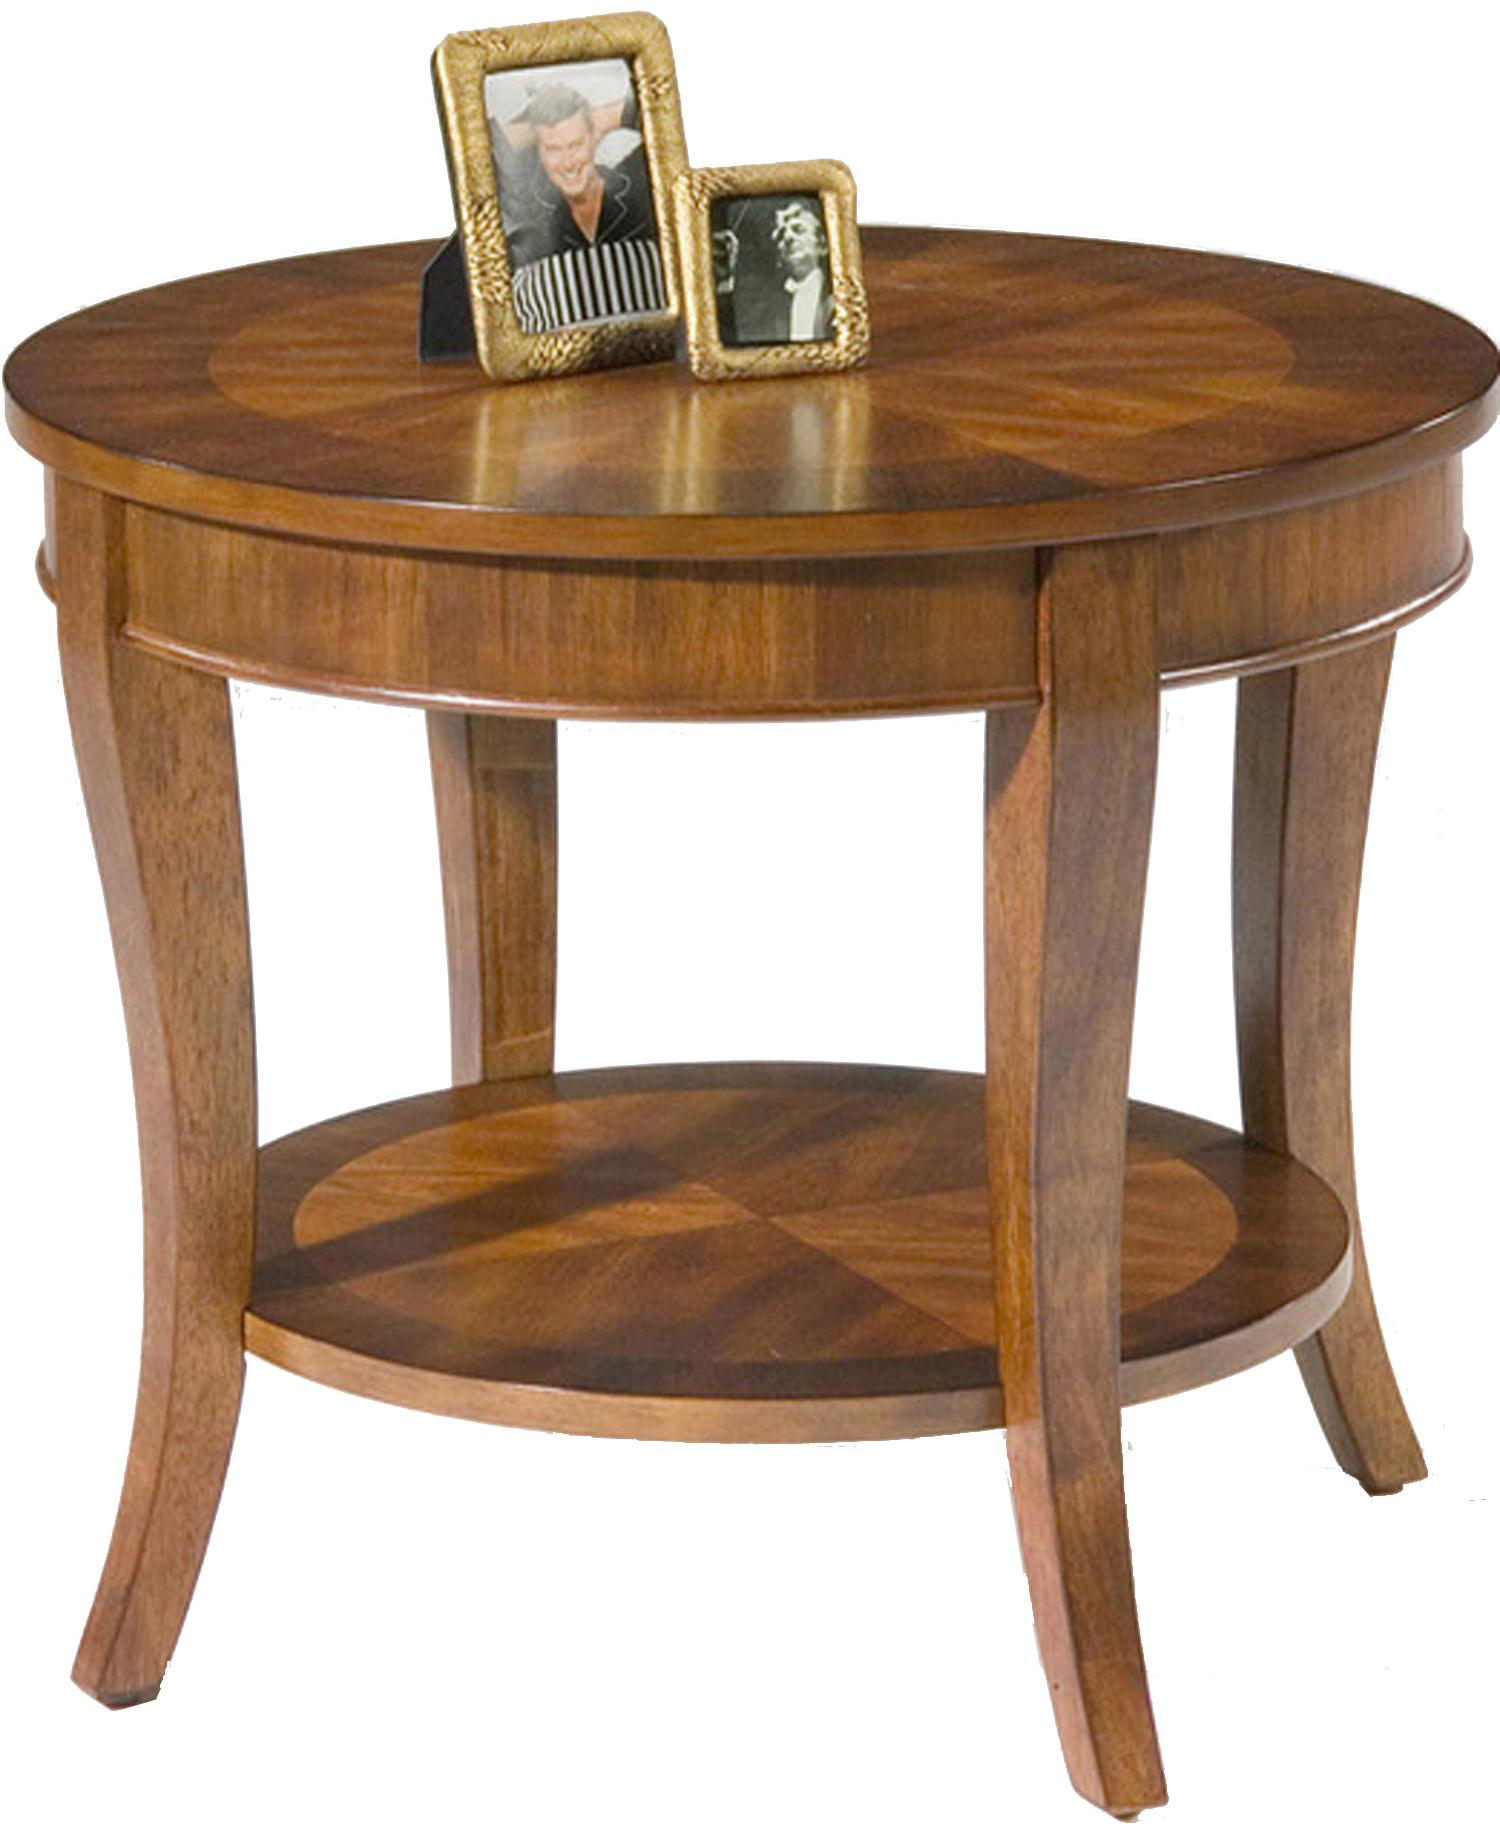 Liberty Furniture Bradshaw Round End Table   Item Number: 748 OT1020